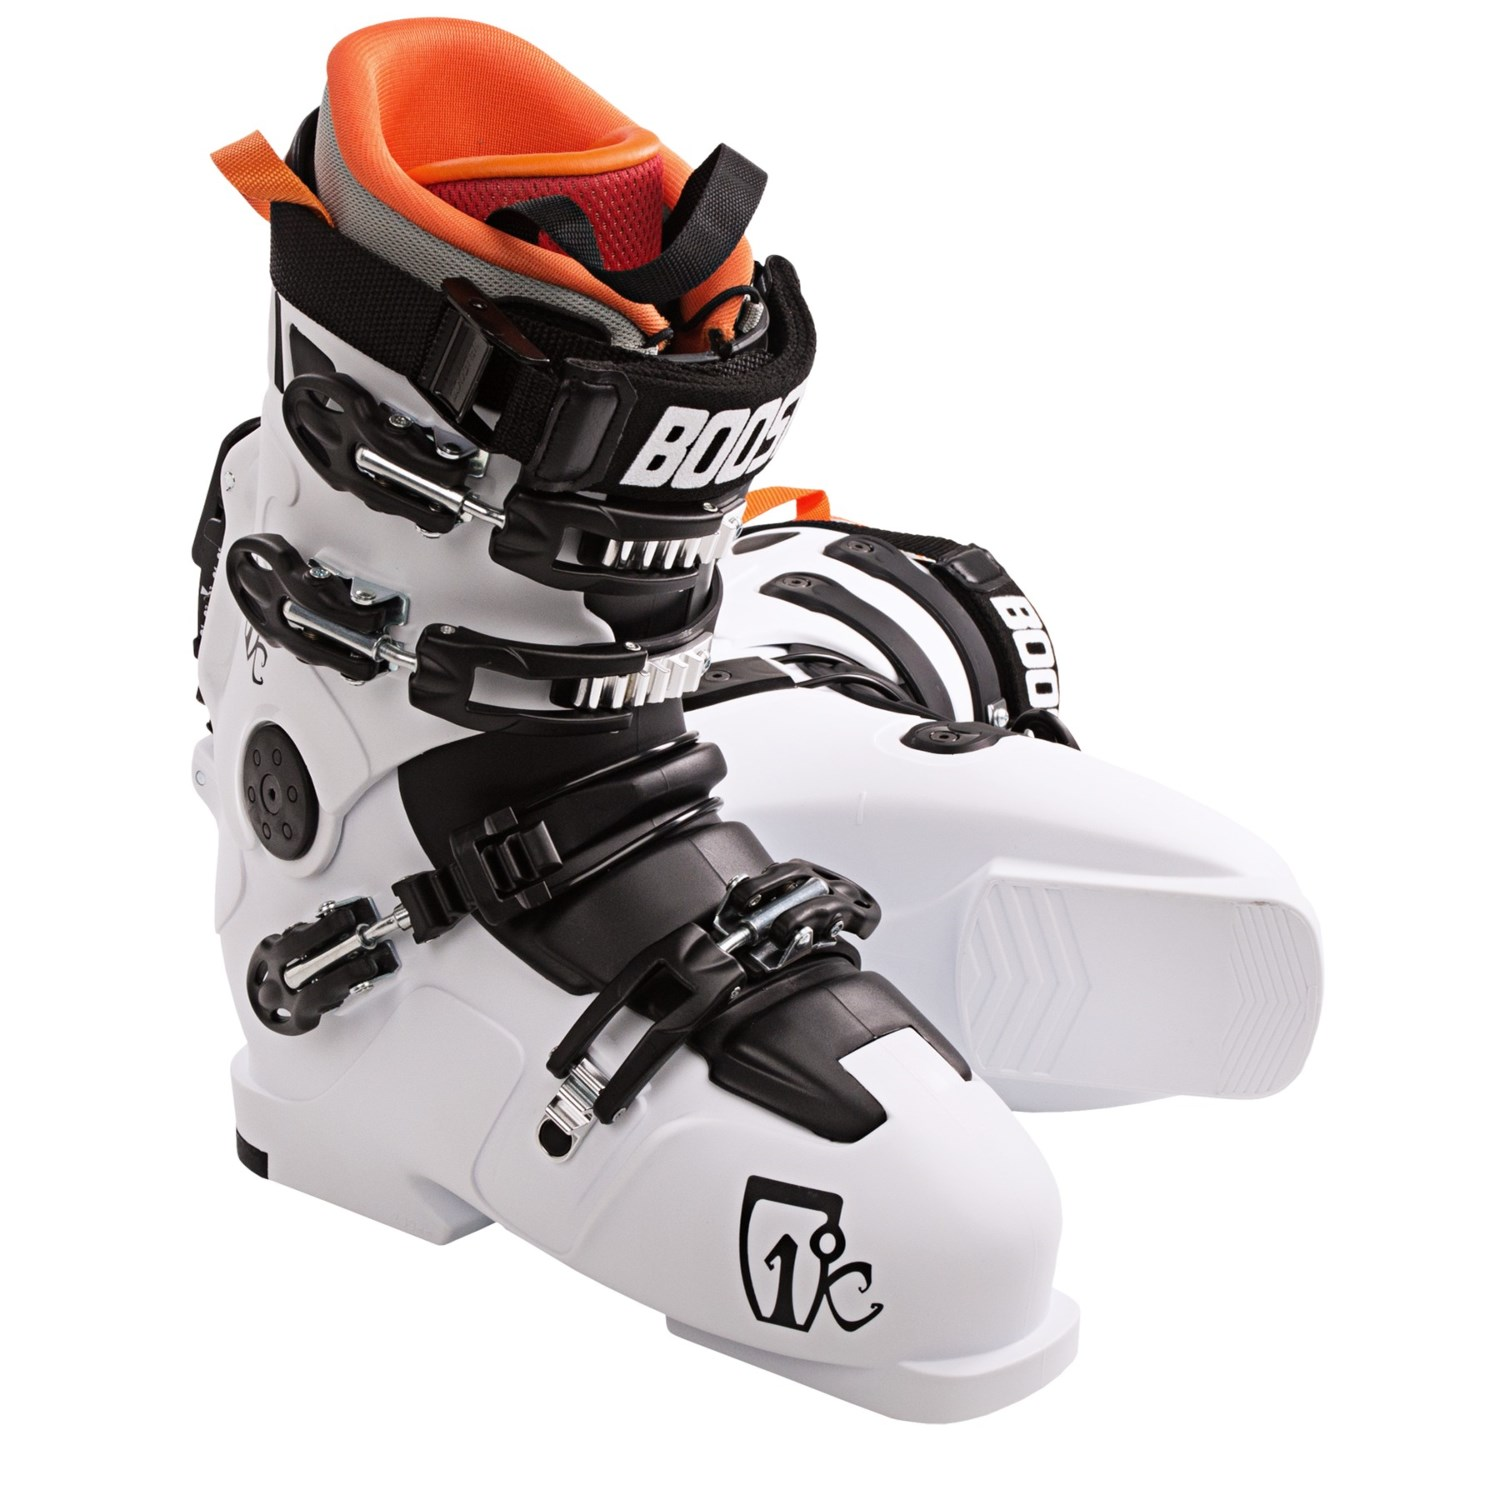 Description: Head Edge Ski Boots | eBay... Added by: Jack